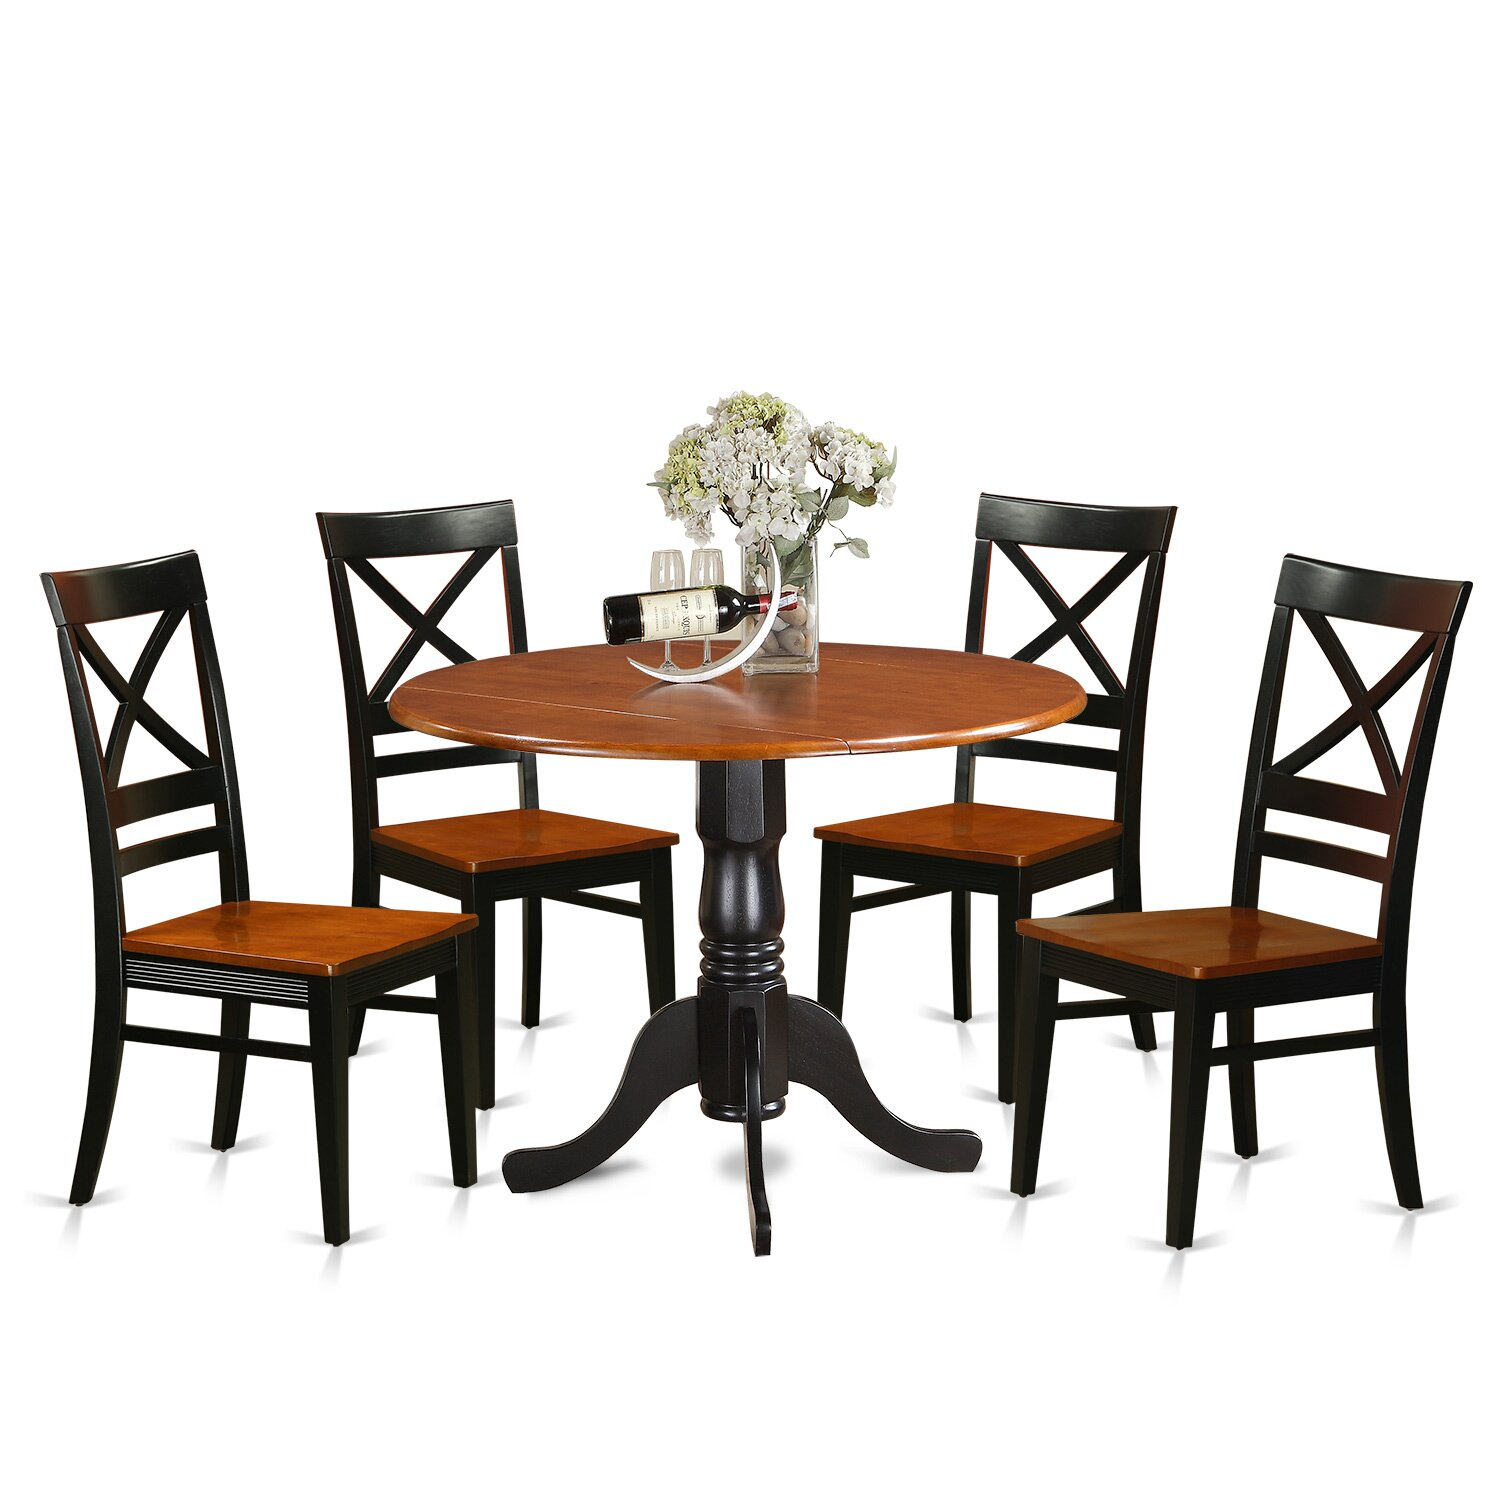 Cheap 5 Piece Dining Set: East West 5 Piece Dining Set & Reviews